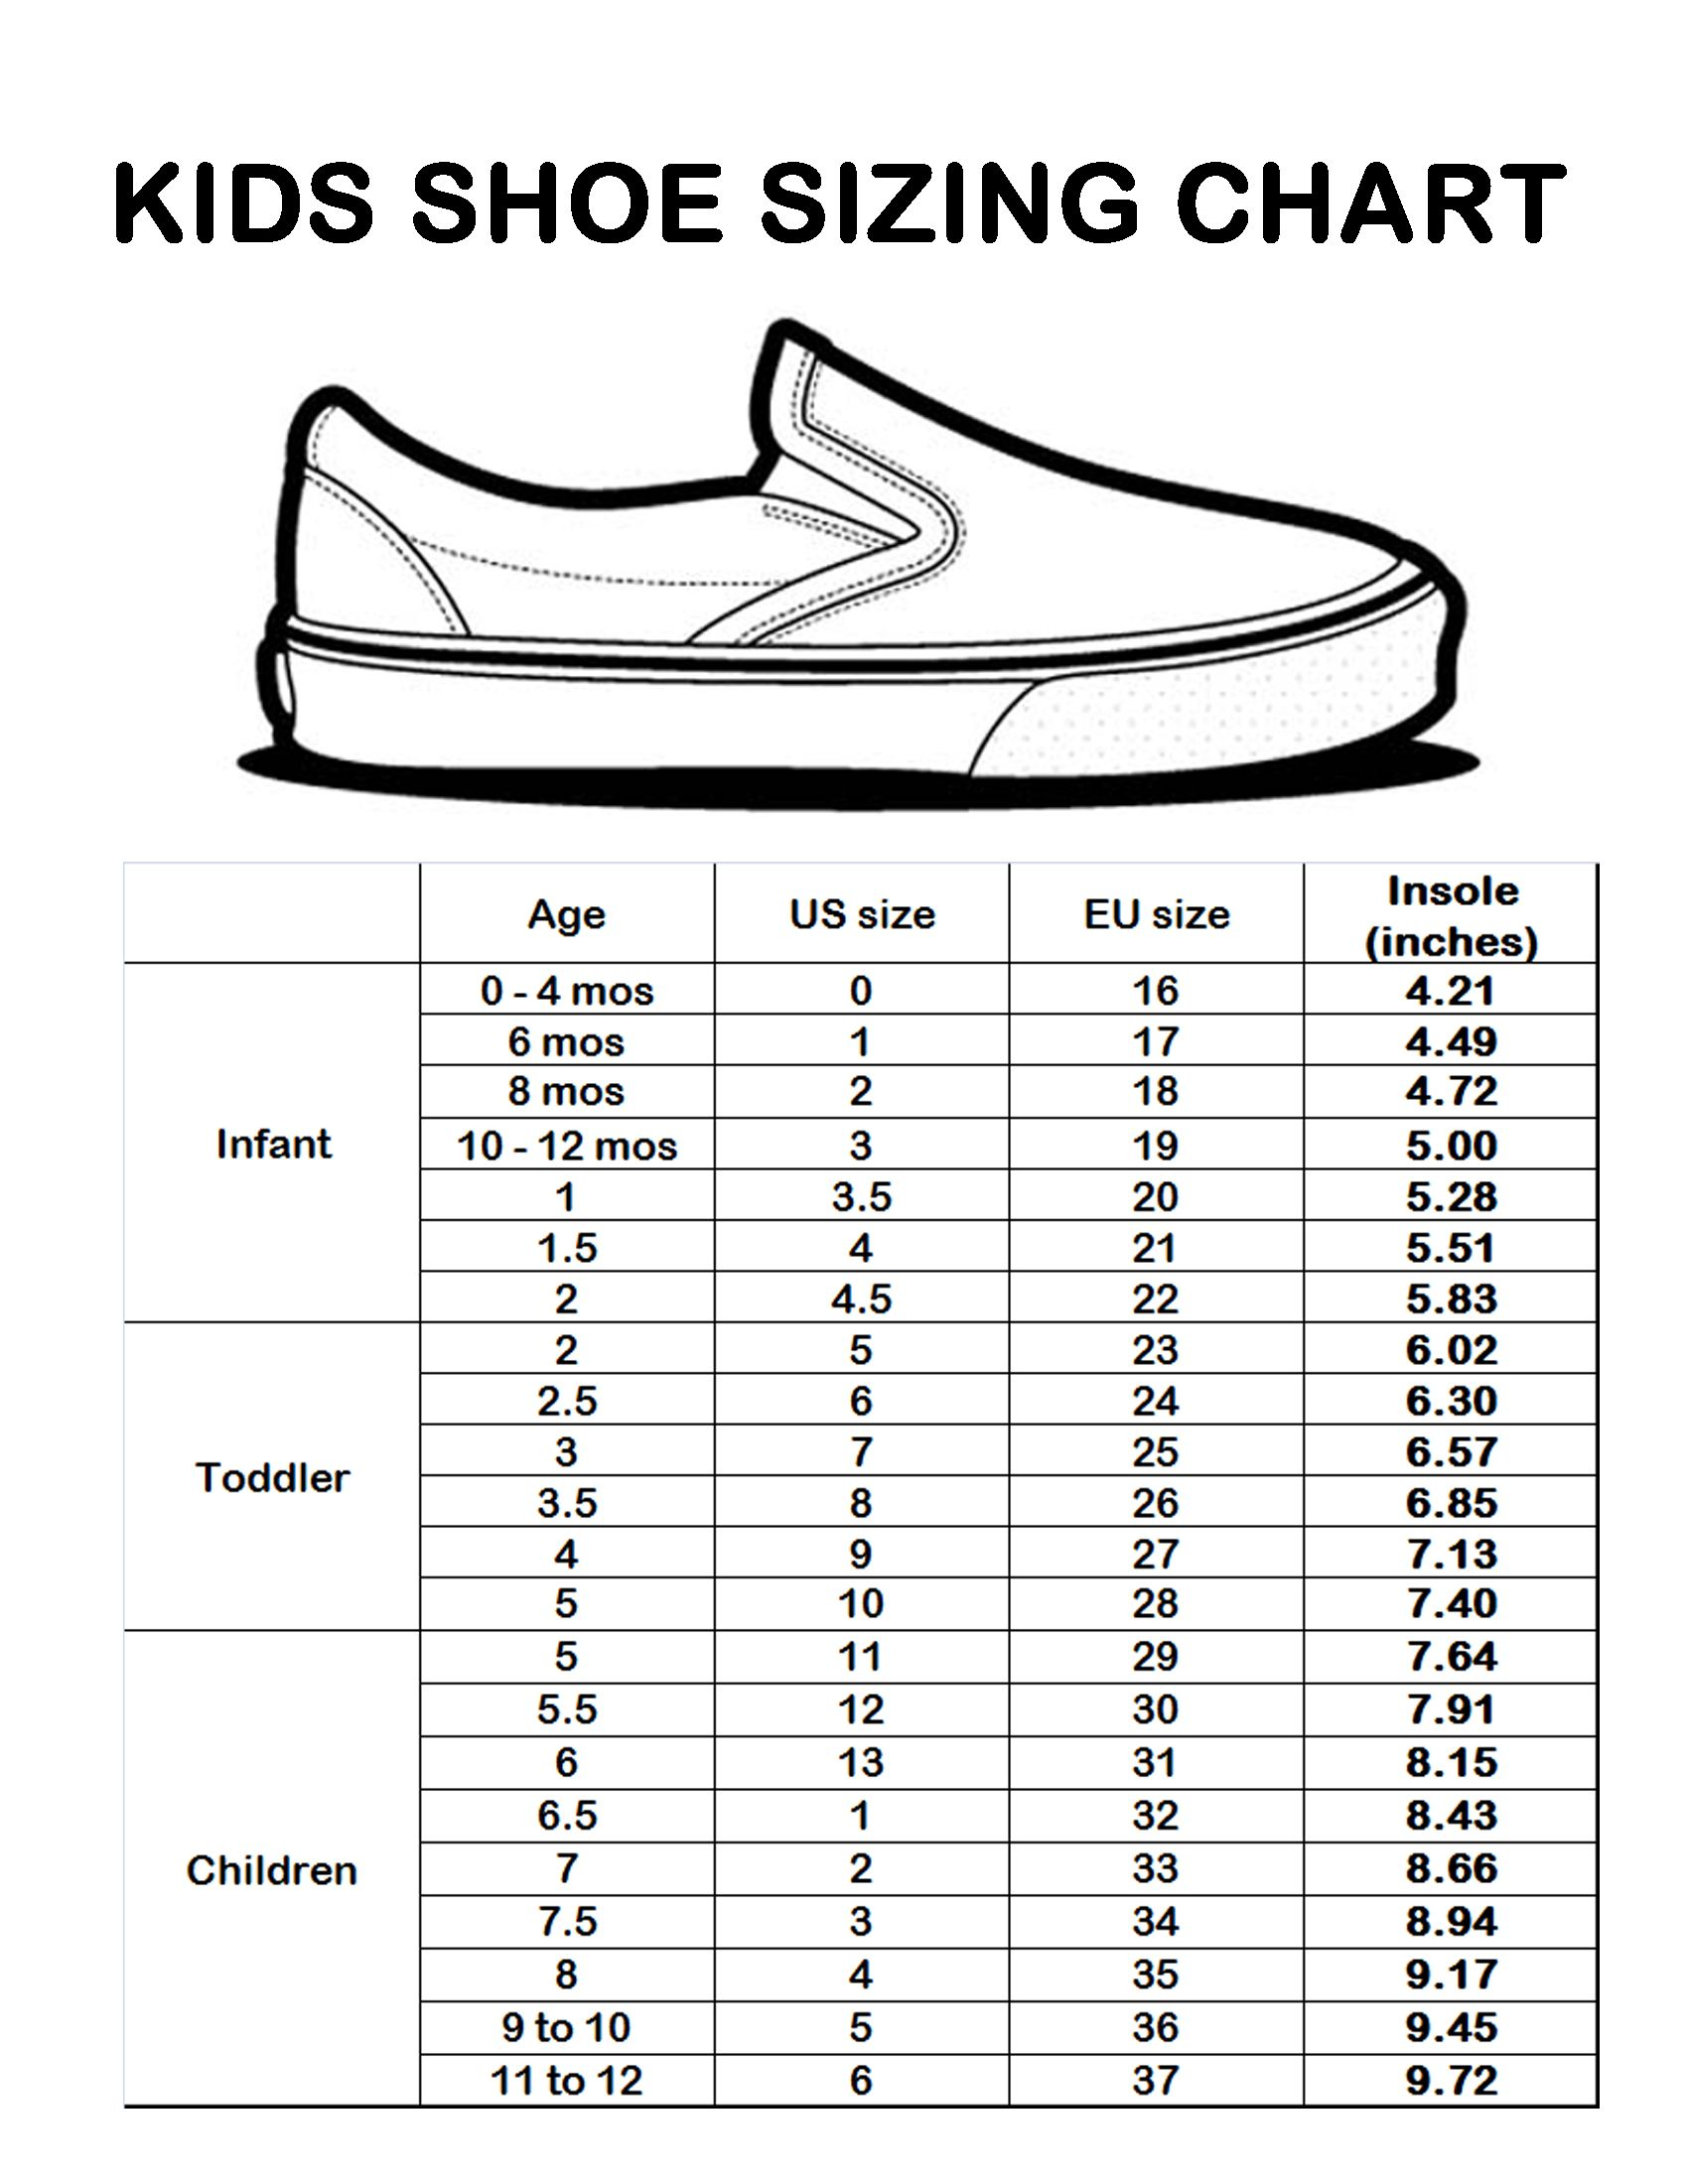 Kids shoe size chart sizing chart dicas tips pinterest